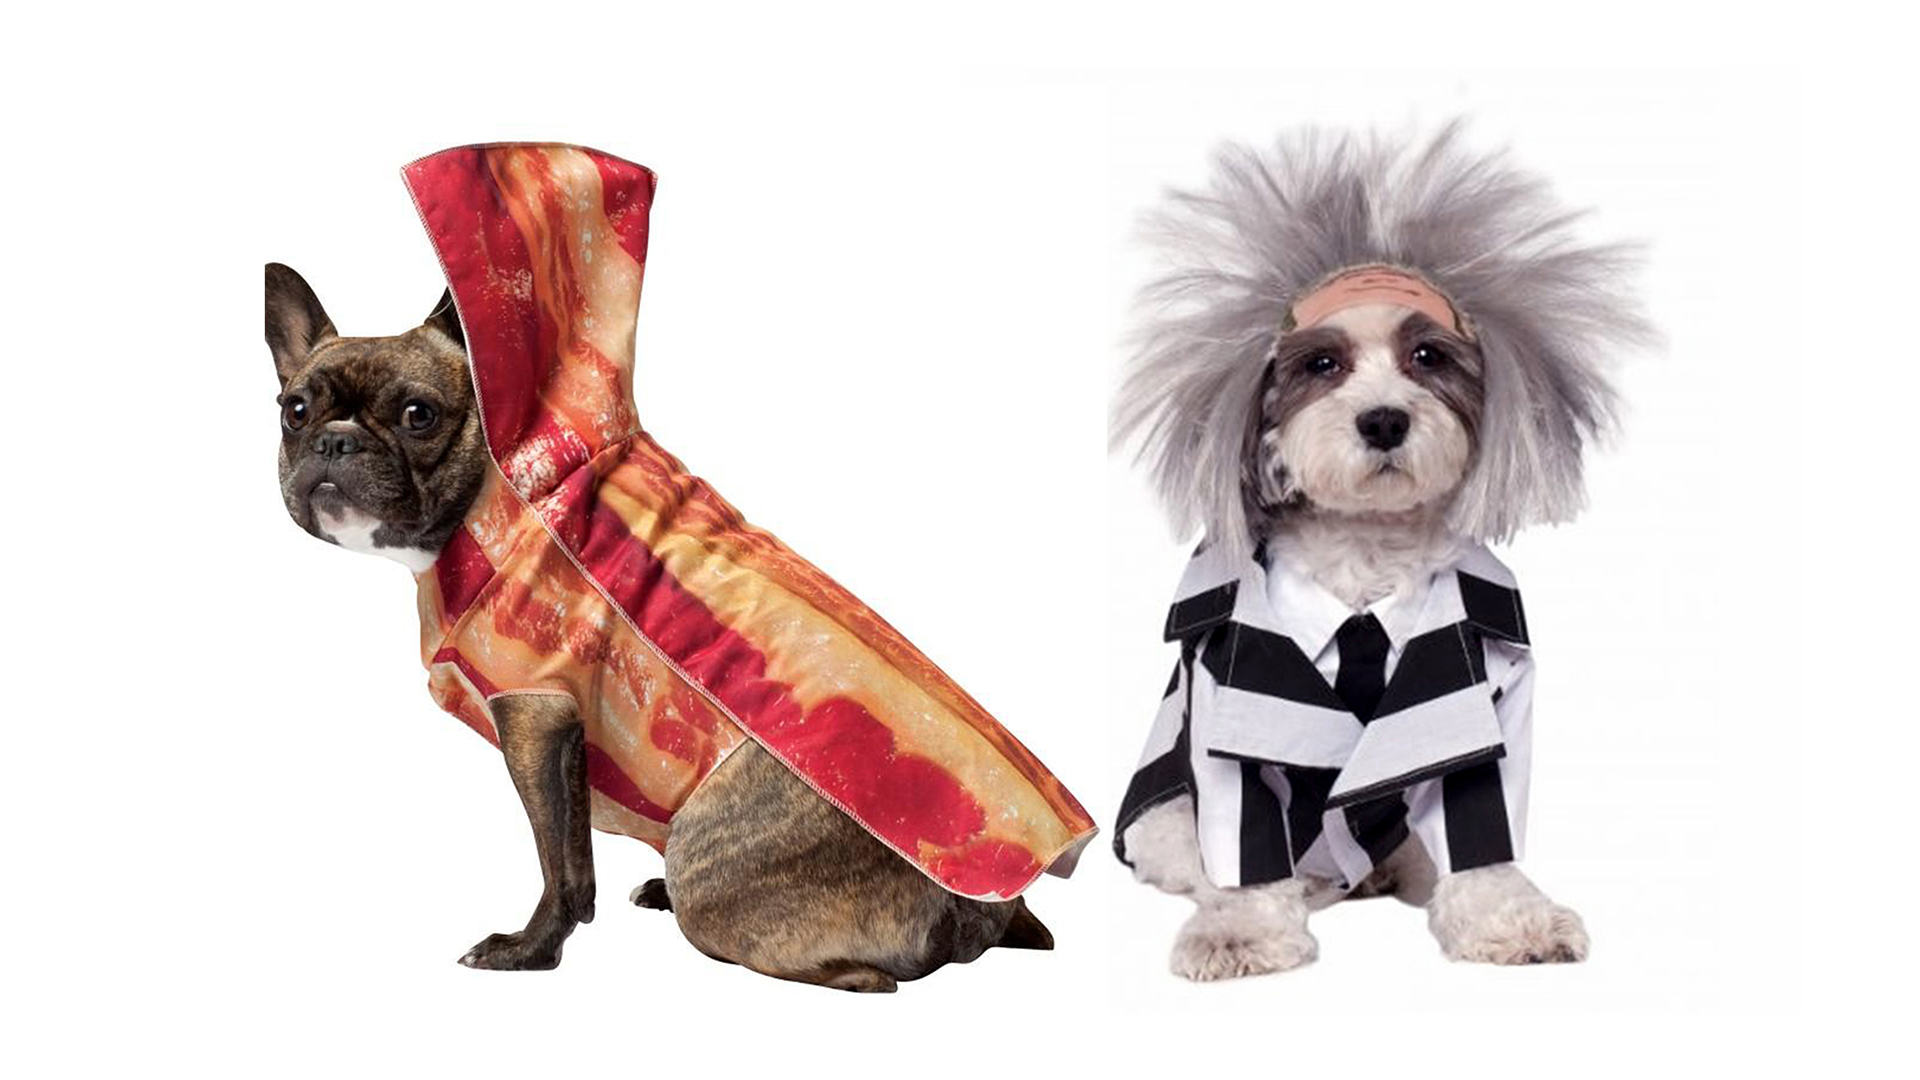 Halloween dog costume ideas: 32 easy, cute costumes for your canine